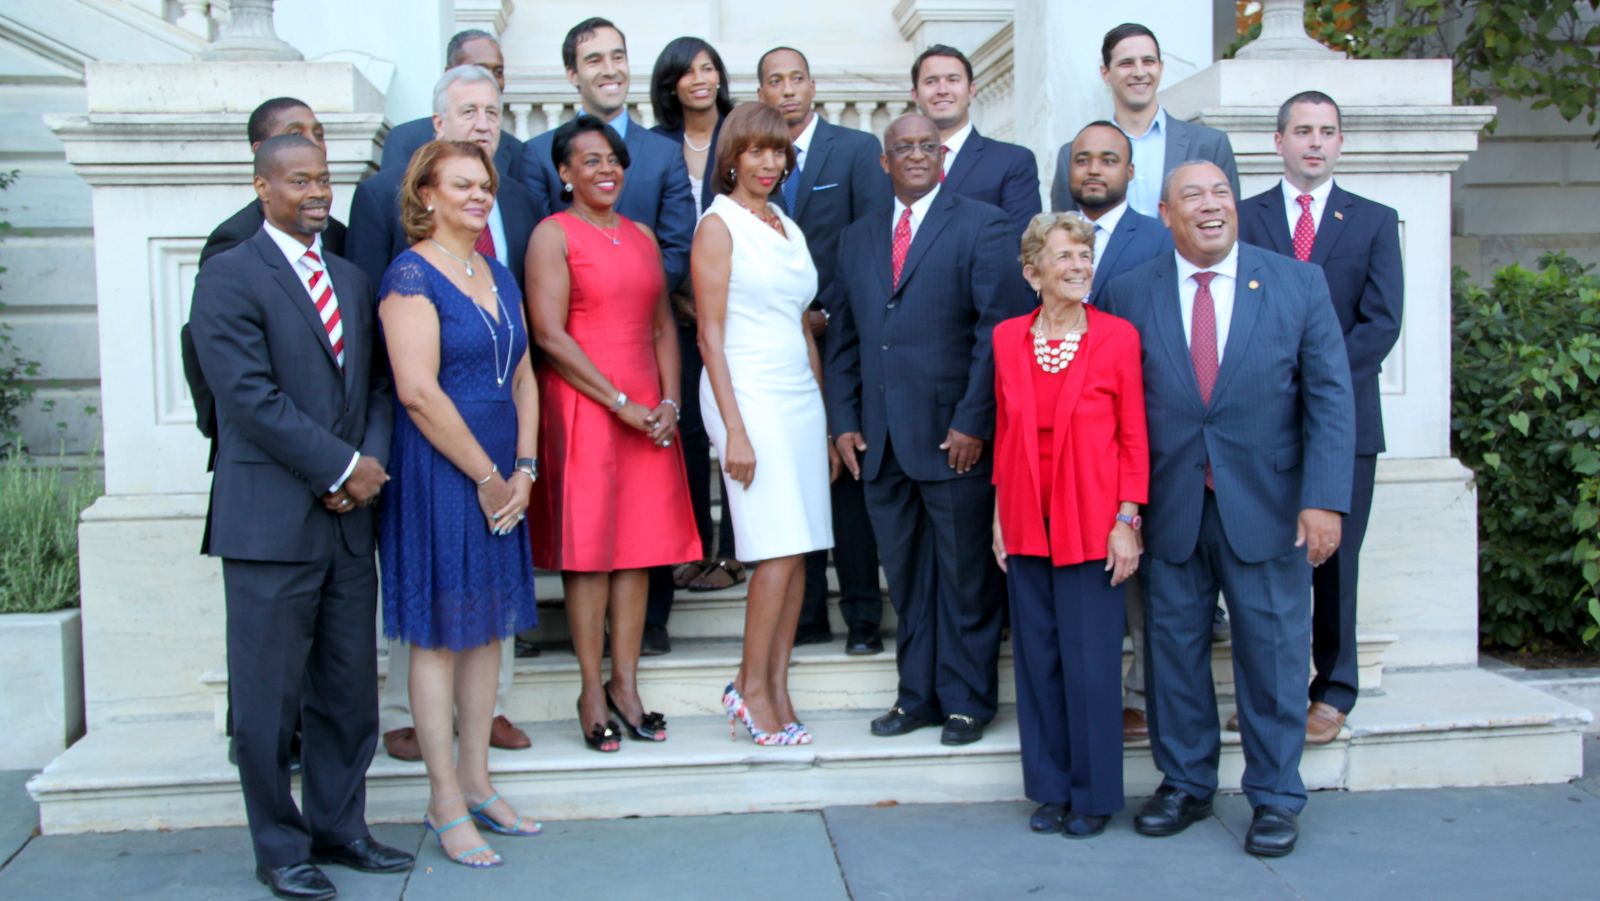 Joan Pratt and Catherine Pugh stand with fellow 2016 nominees outside City Hall in 2016, part of a